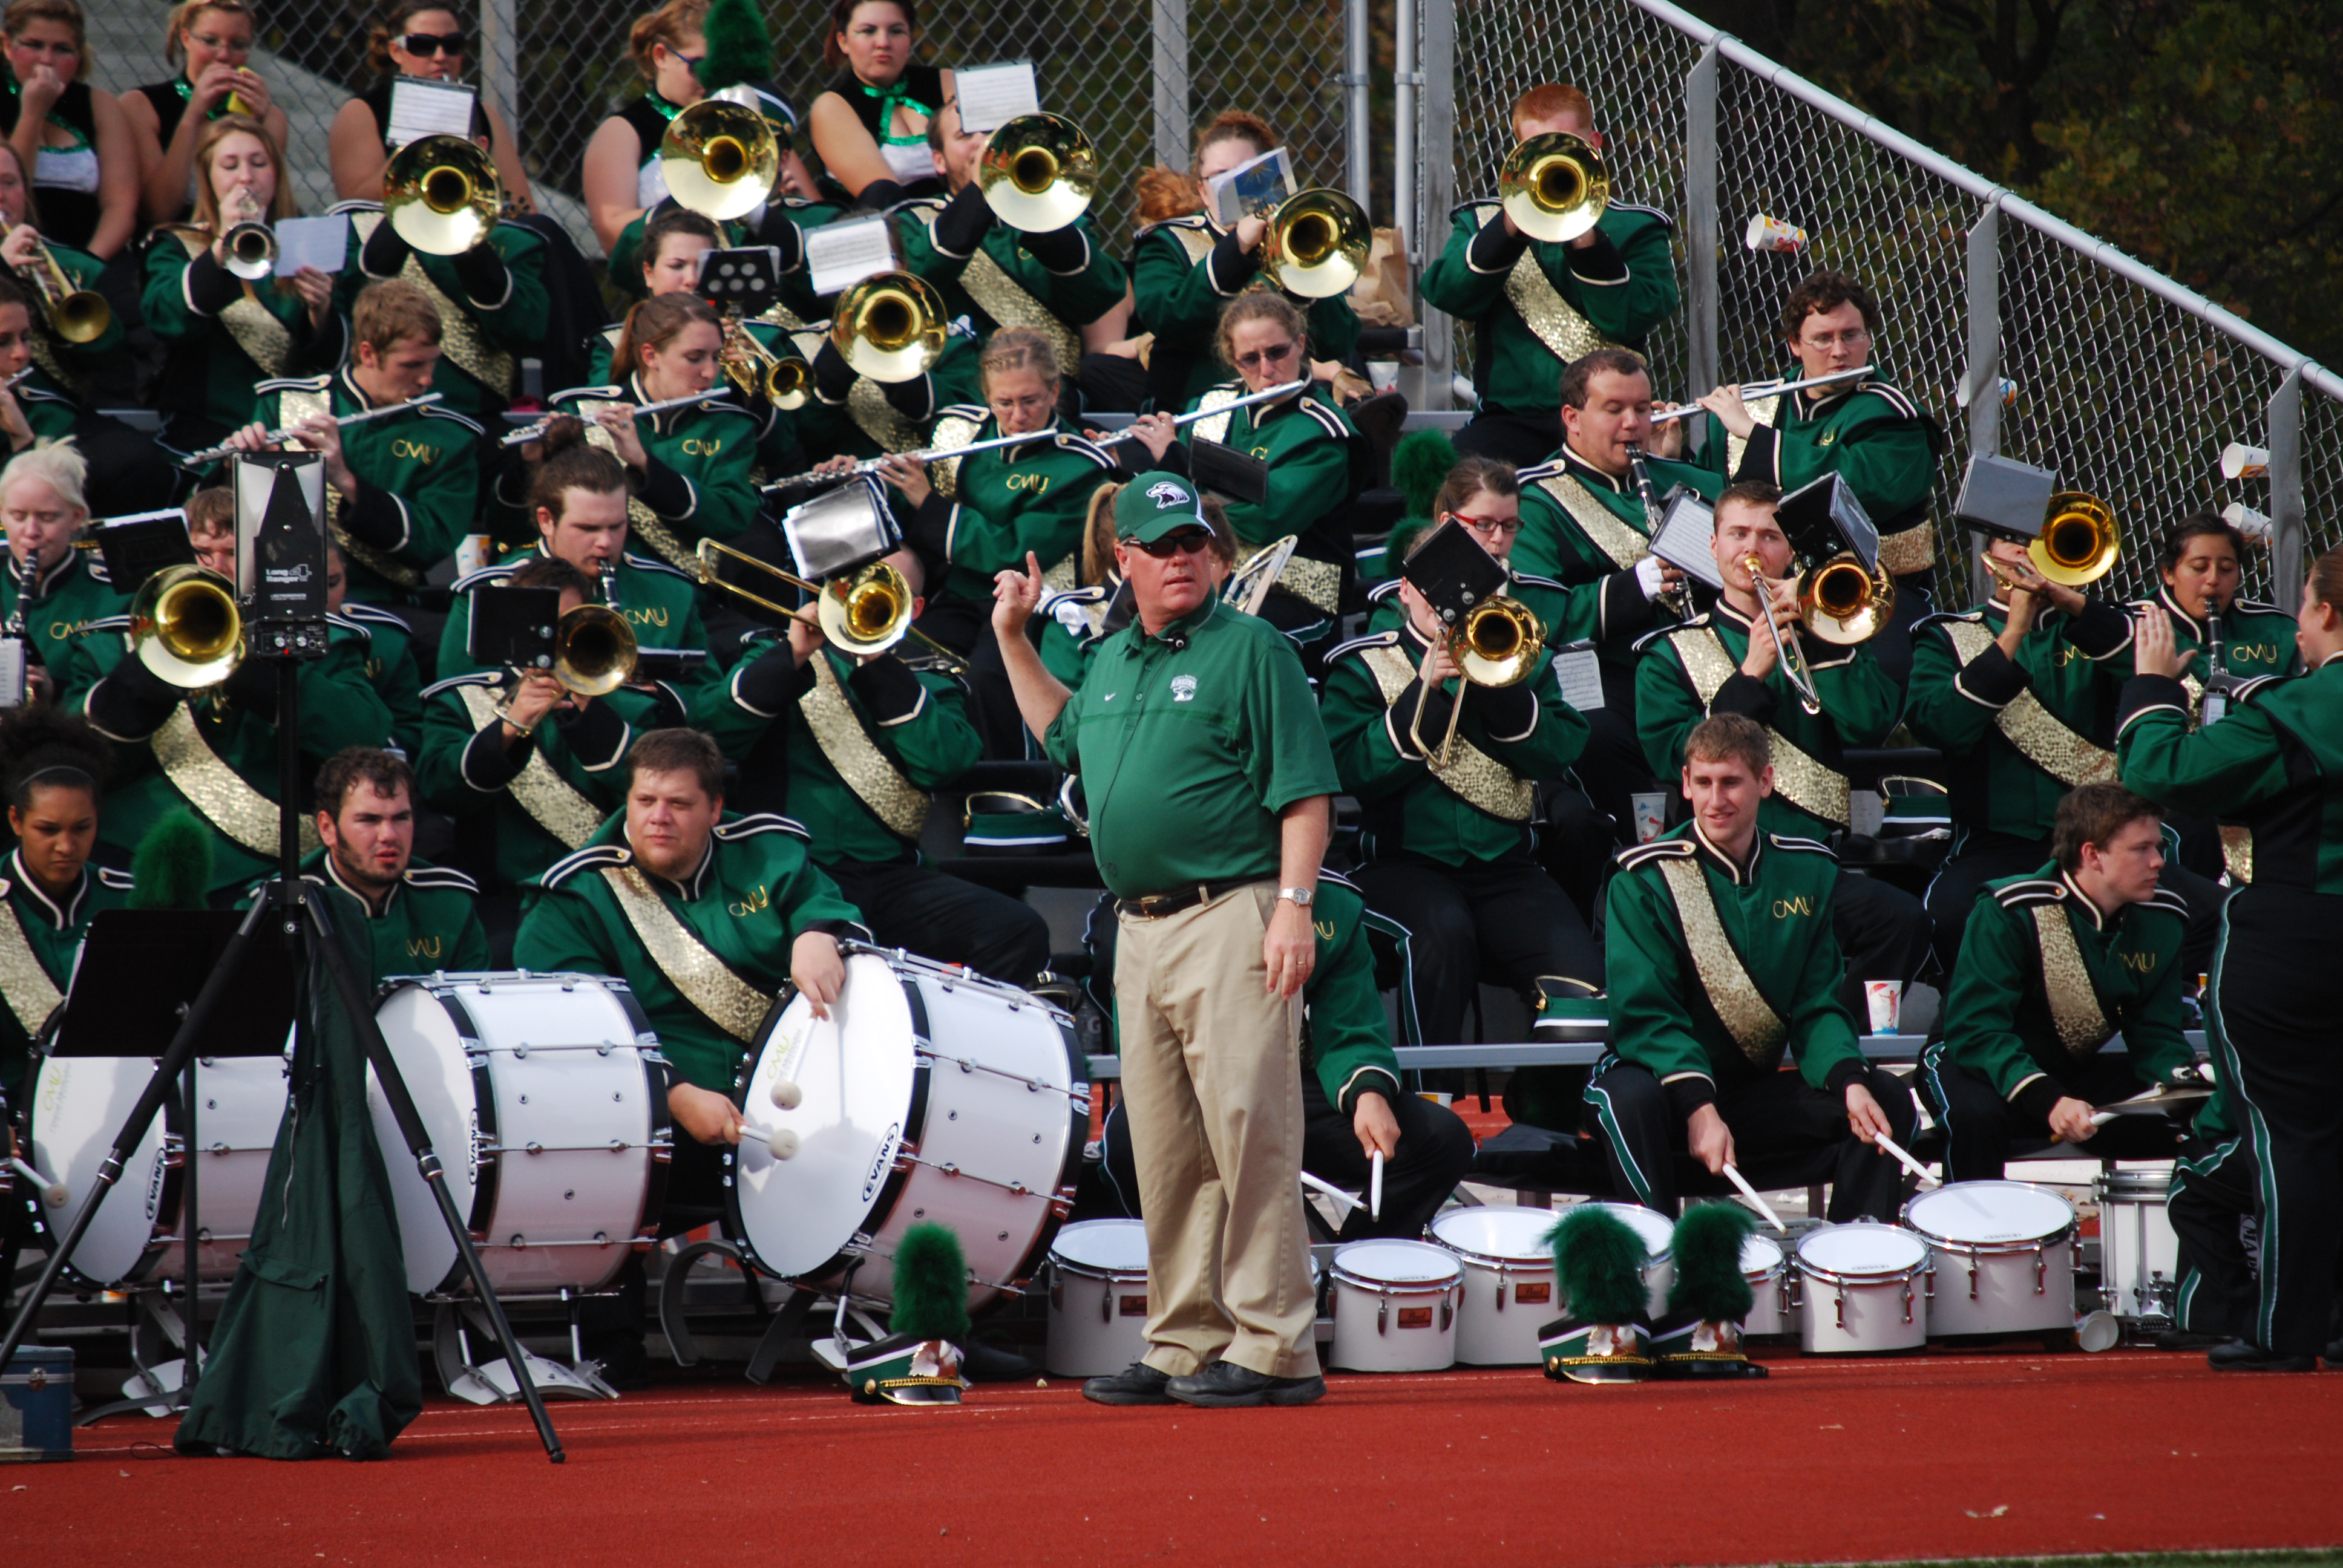 Skip Vandelicht with marching band